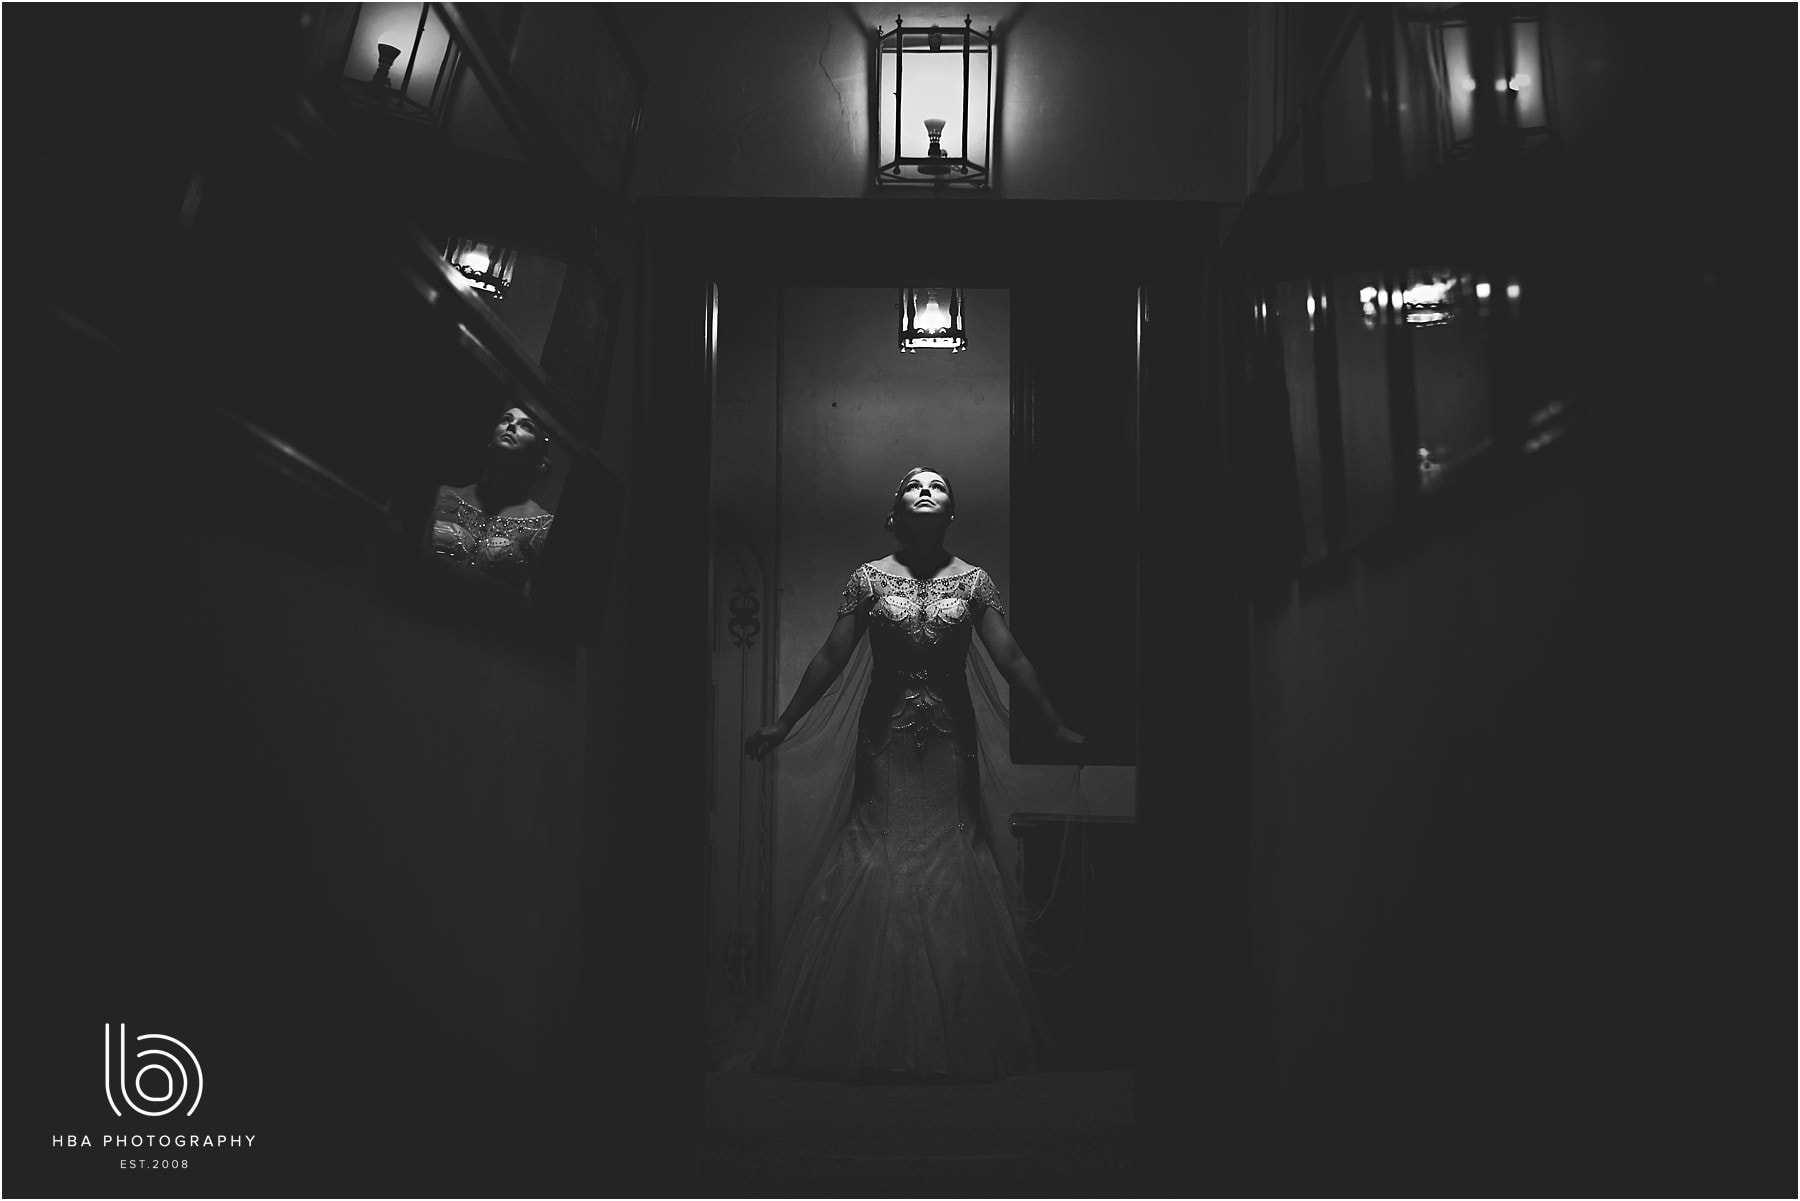 the bride stood in the dark at the end of the hallway at Hardwick Hall